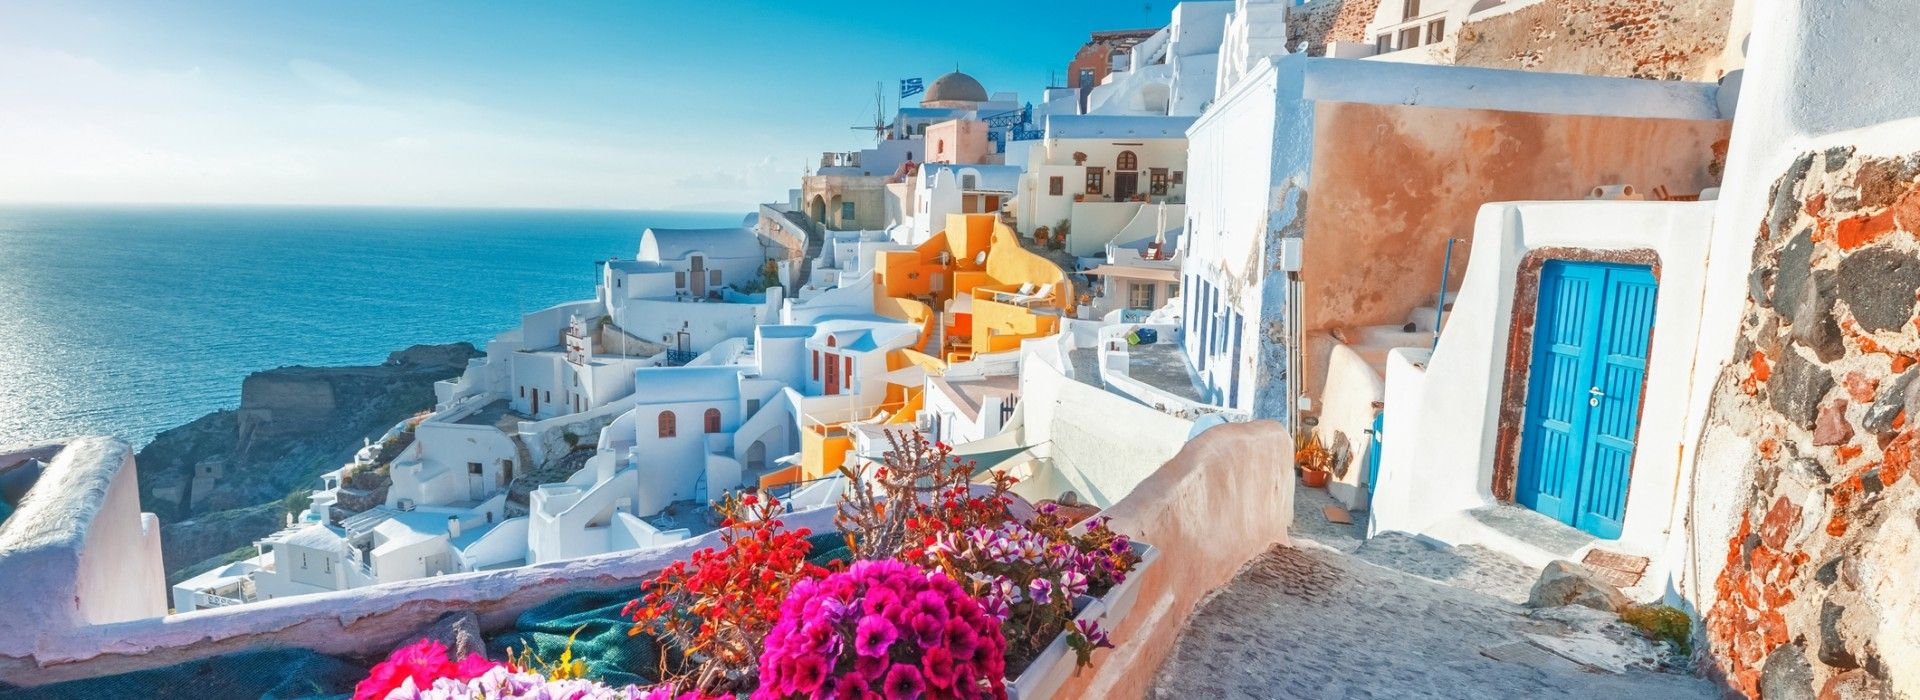 Sightseeing, attractions, culture and history Tours in Mediterranean